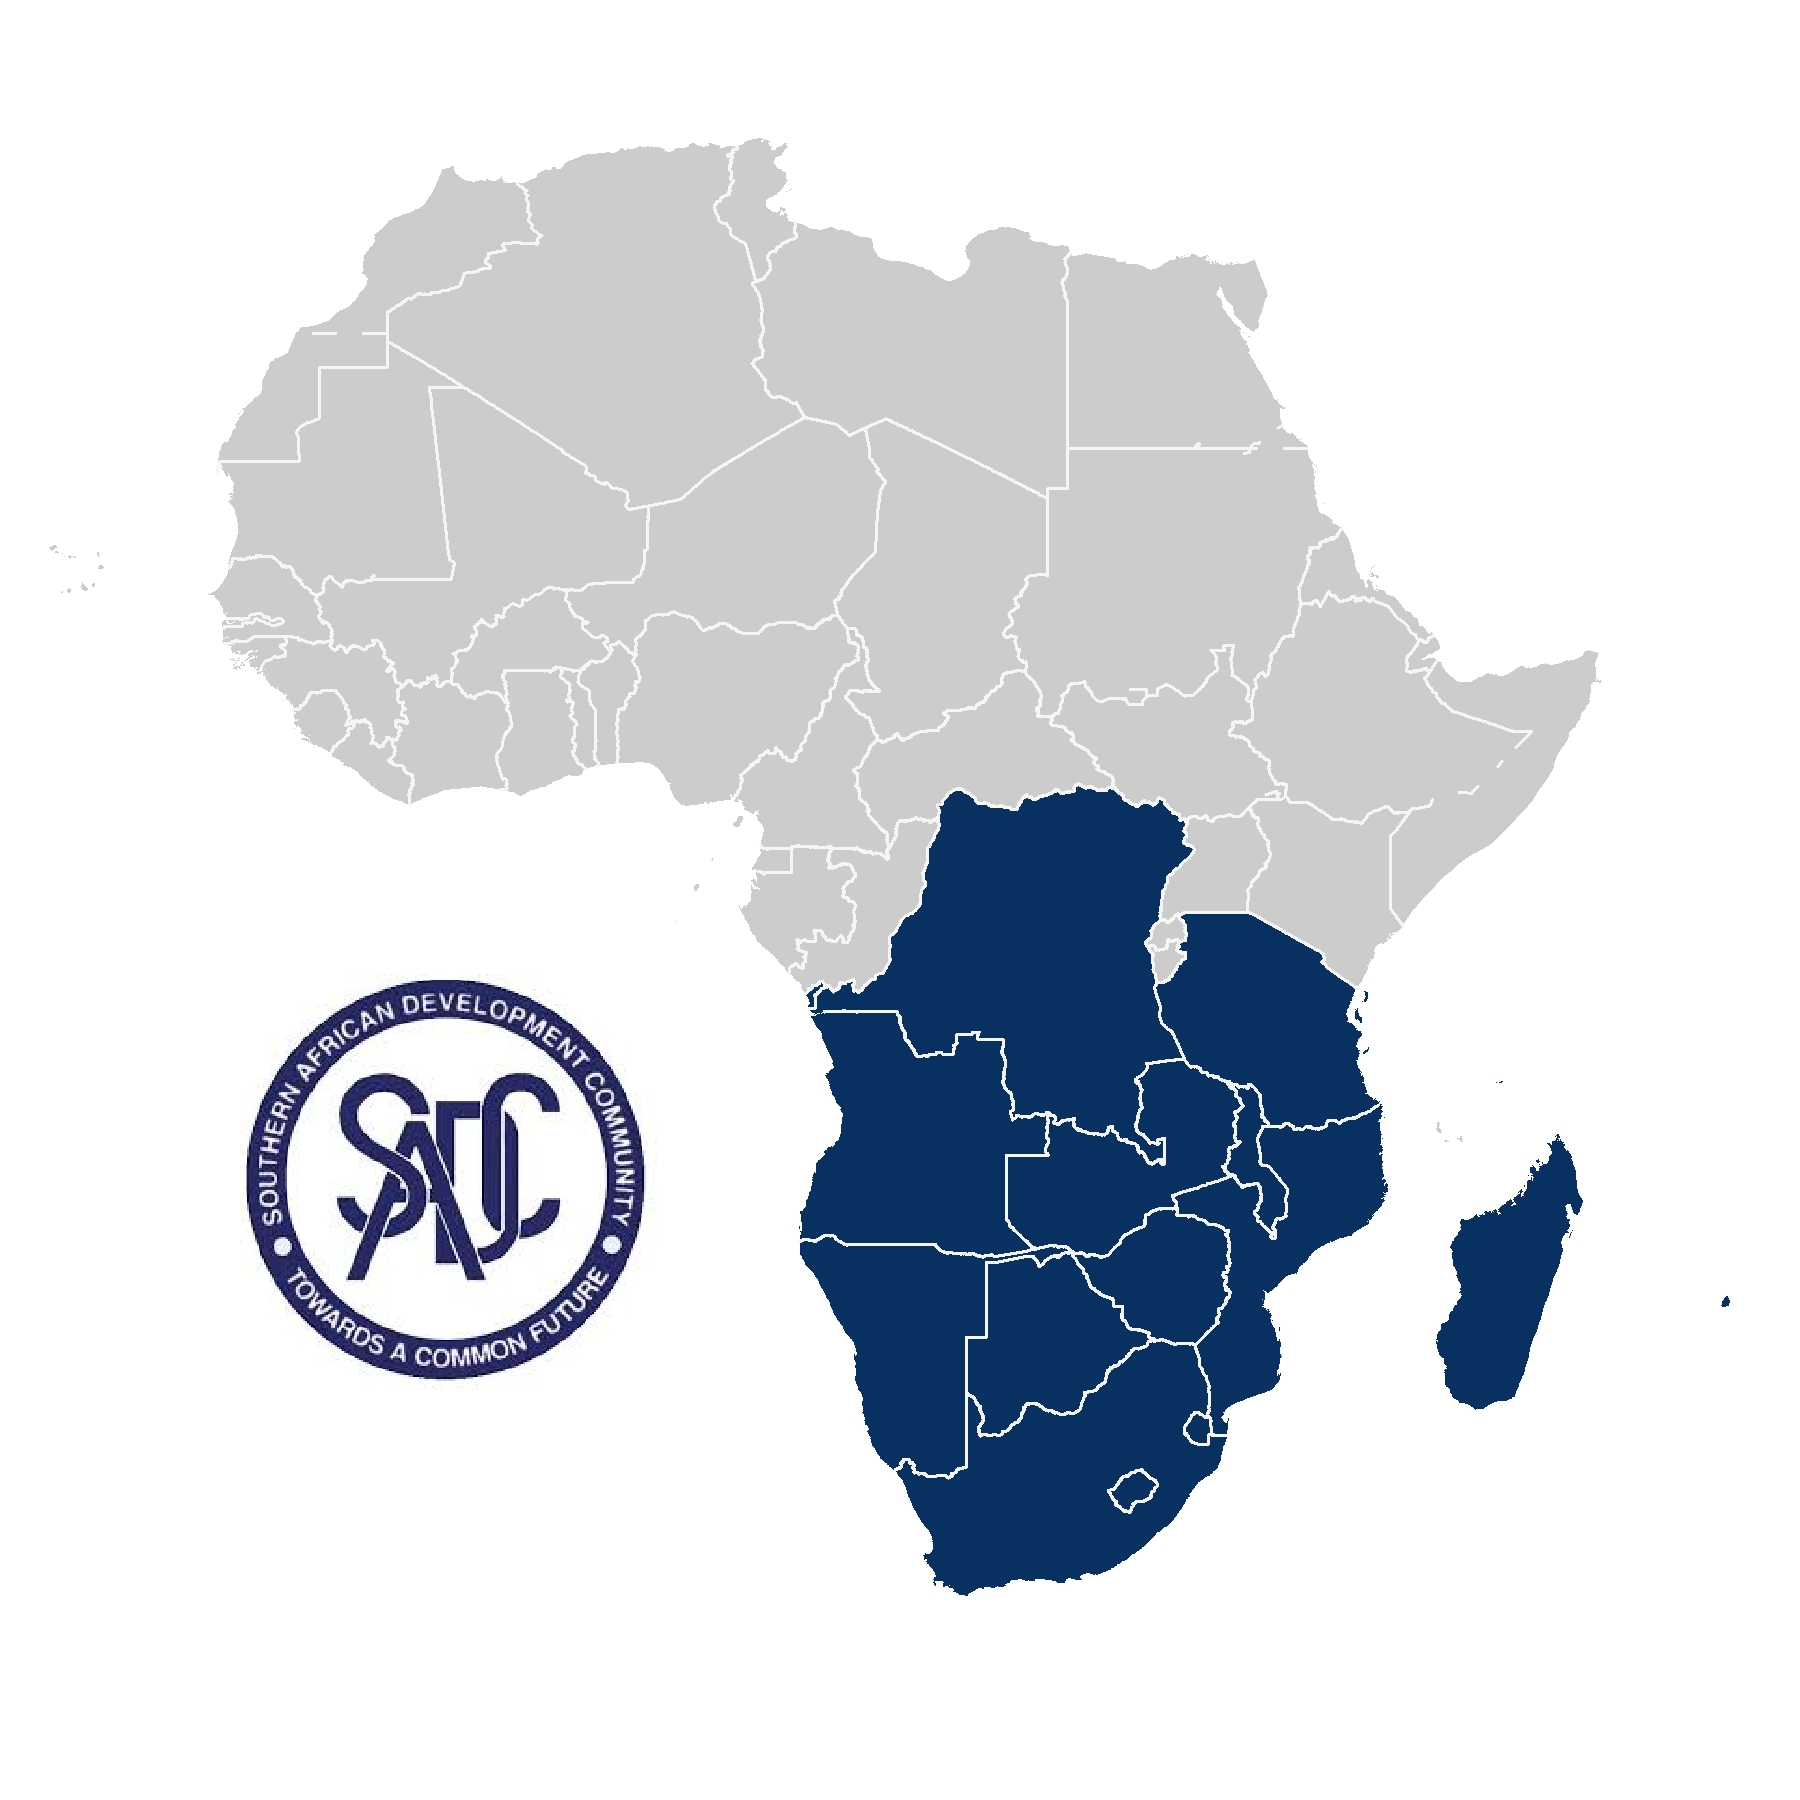 SADC Council Of Ministers Underway In South Africa